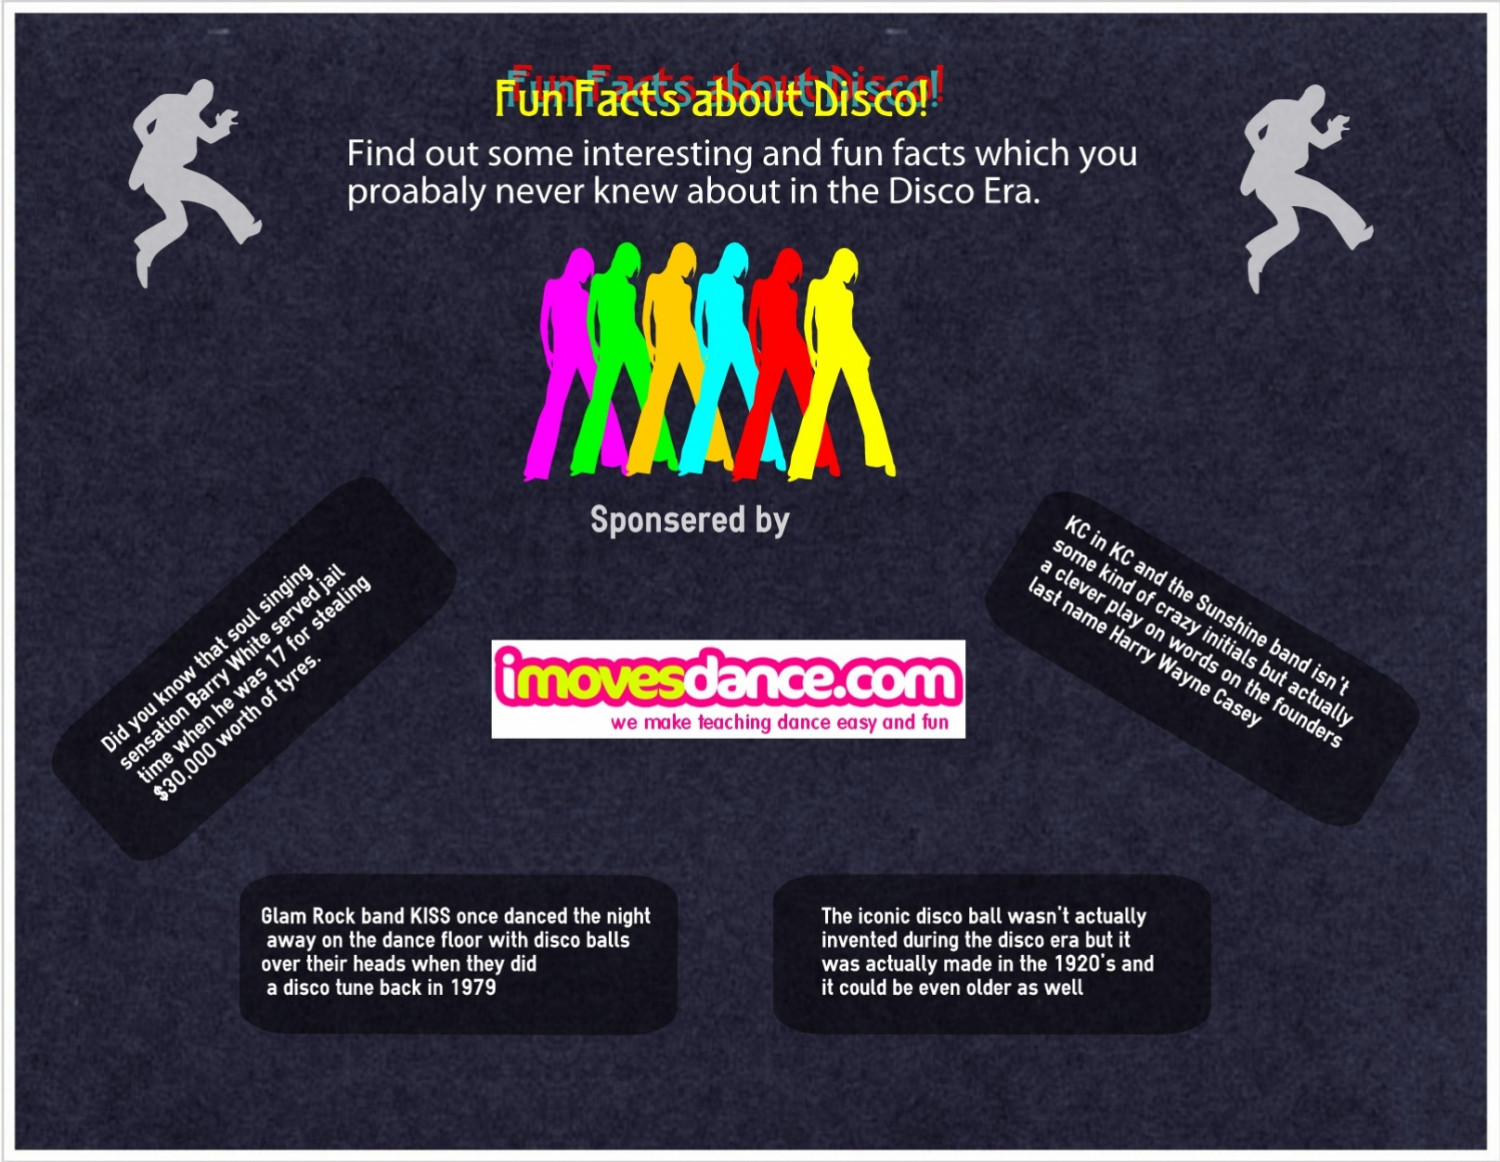 Fun facts about Disco Infographic